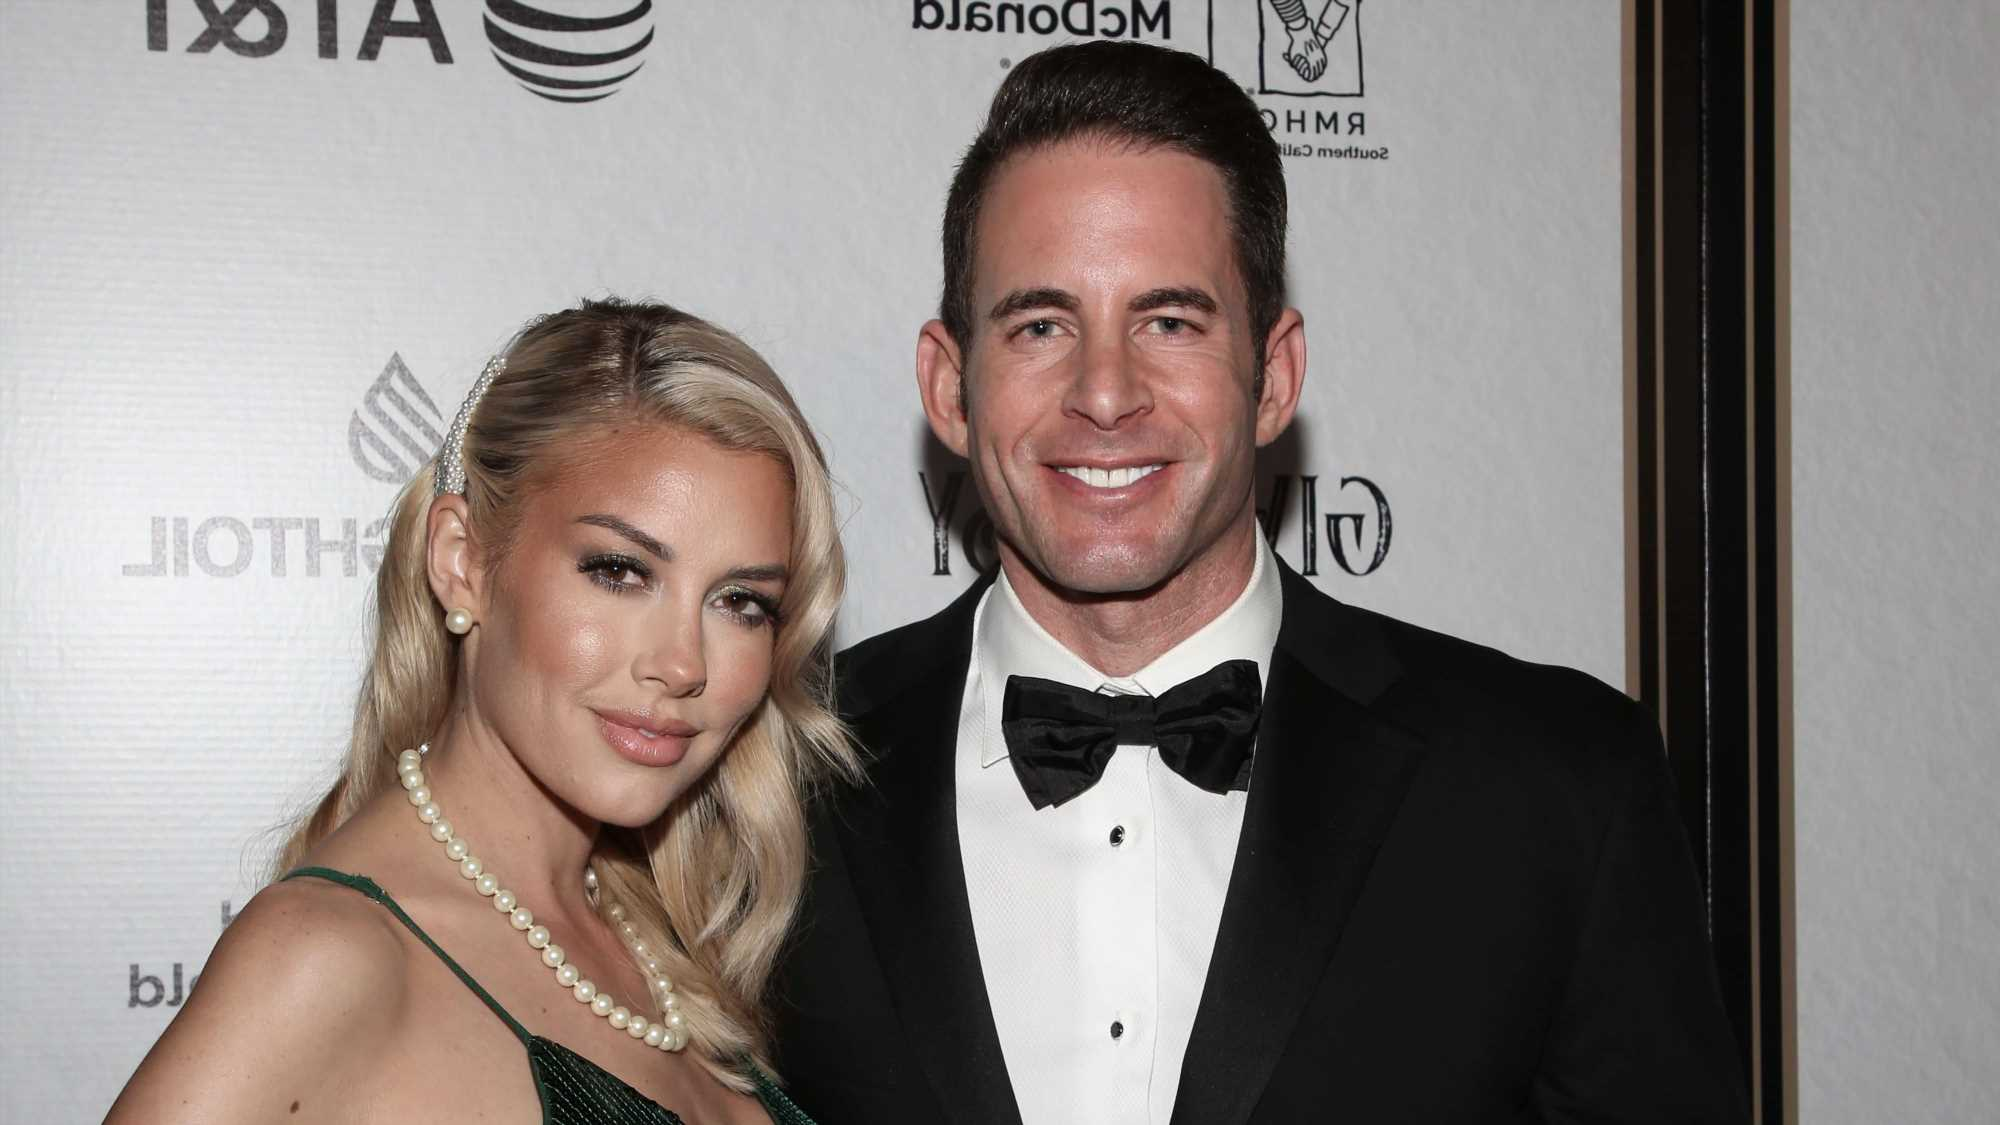 Tarek El Moussa and Heather Rae Young celebrate engagement with 'intimate' party